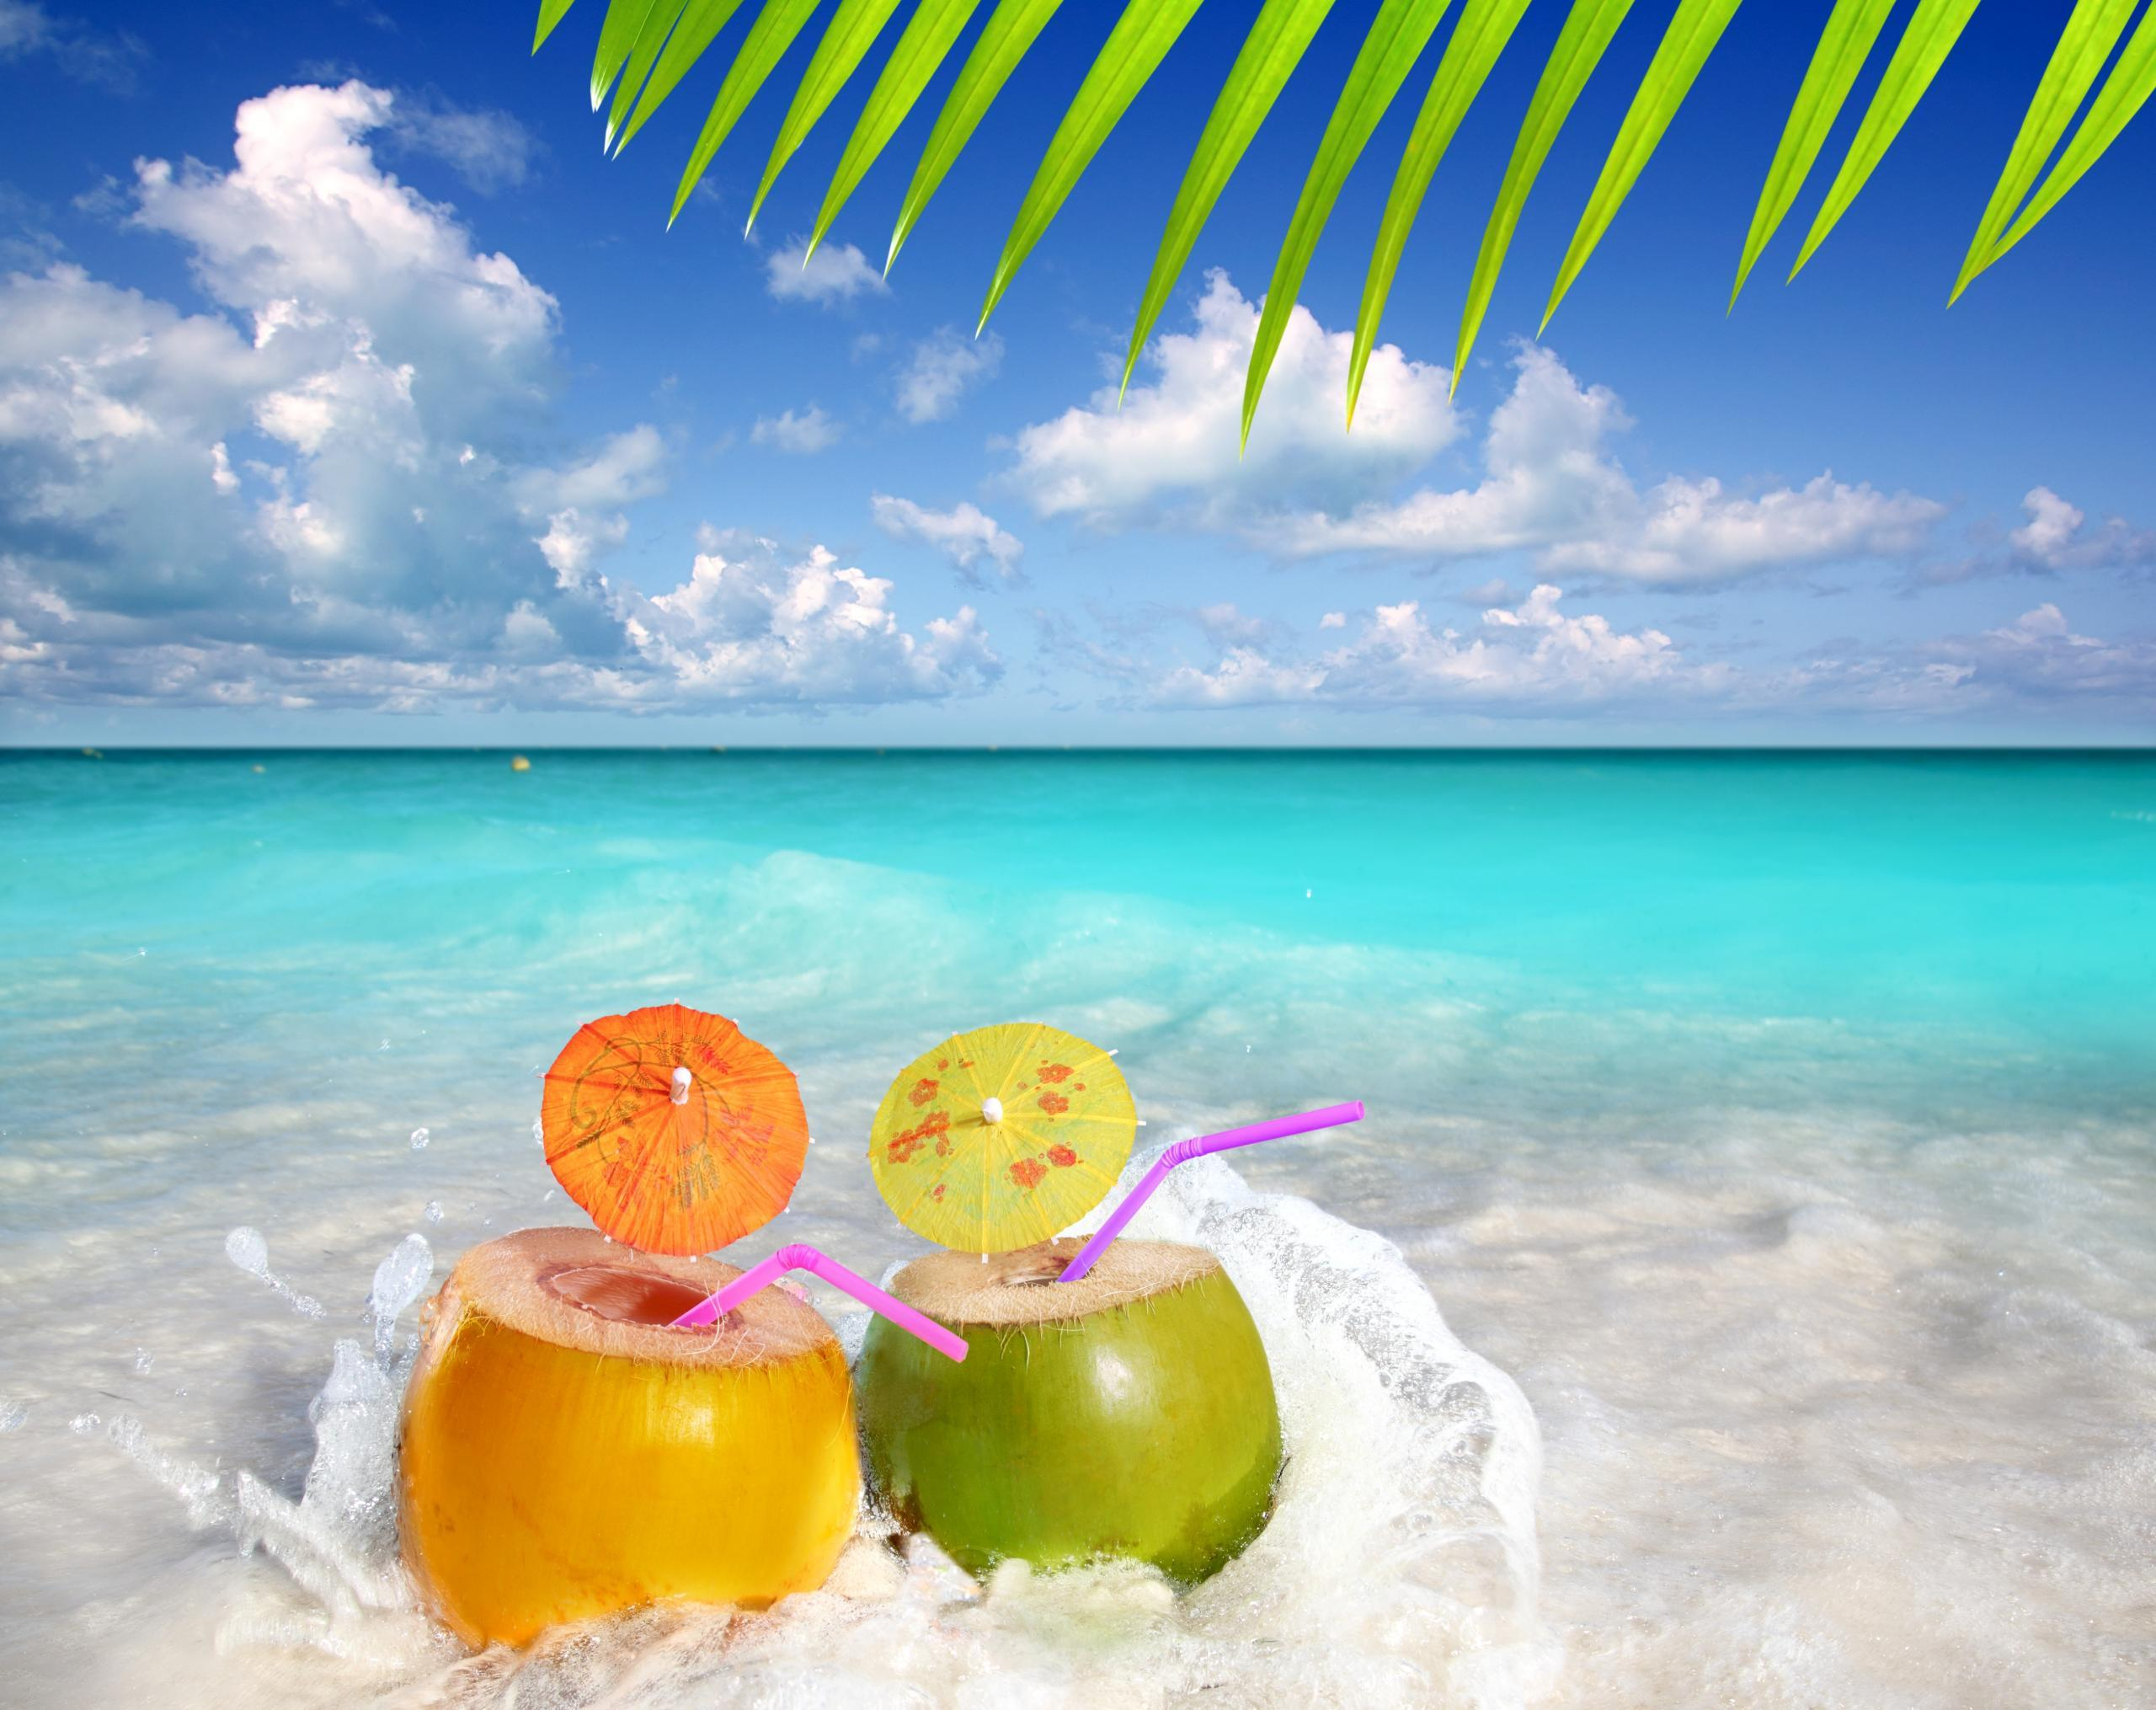 Summer Time Wallpapers : Summer Time Hd Wallpapers Widescreen Free